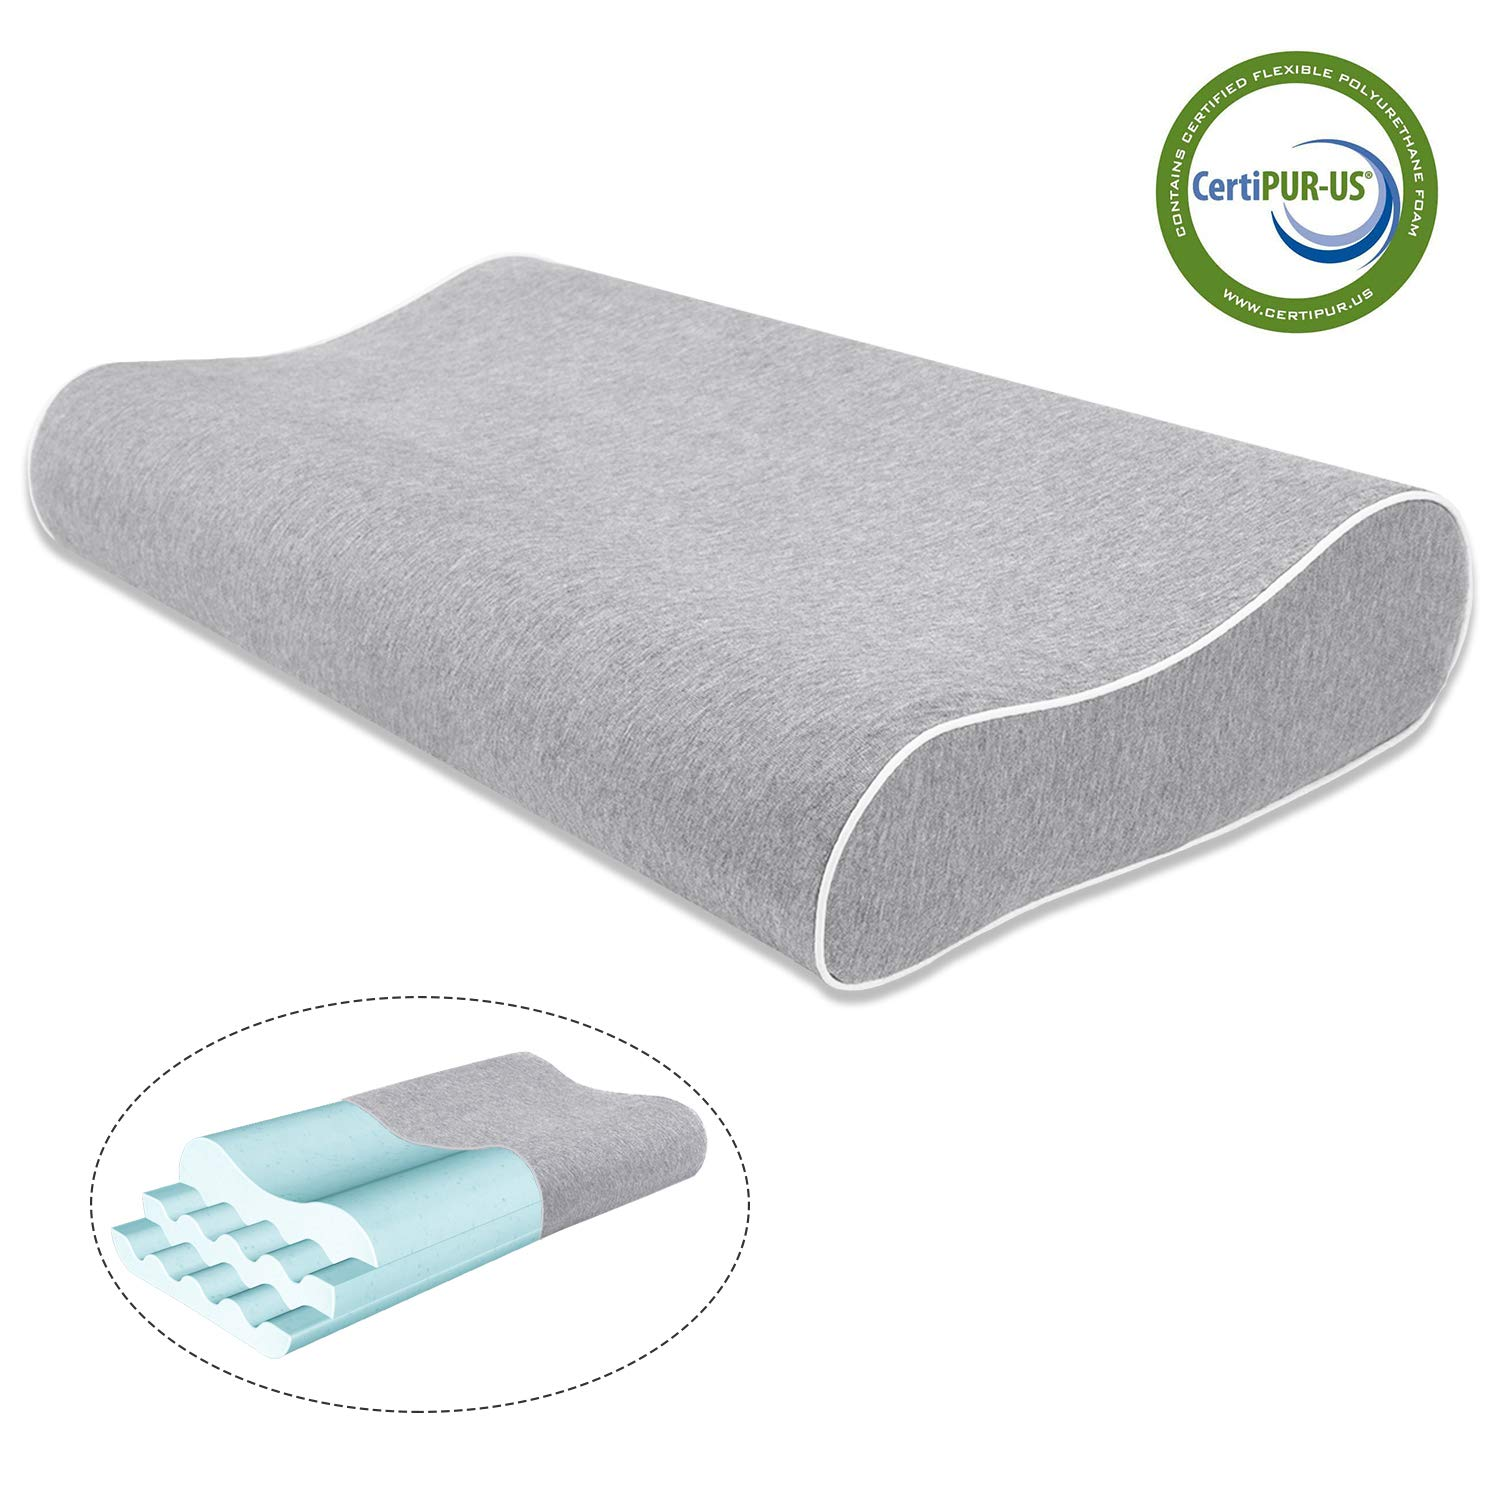 Mugetu Gel Infused Memory Foam Pillow Height Adjustable Cervical Pillow Supportive Contour Bed Pillow Neck Support for Back and Side Sleepers by Mugetu